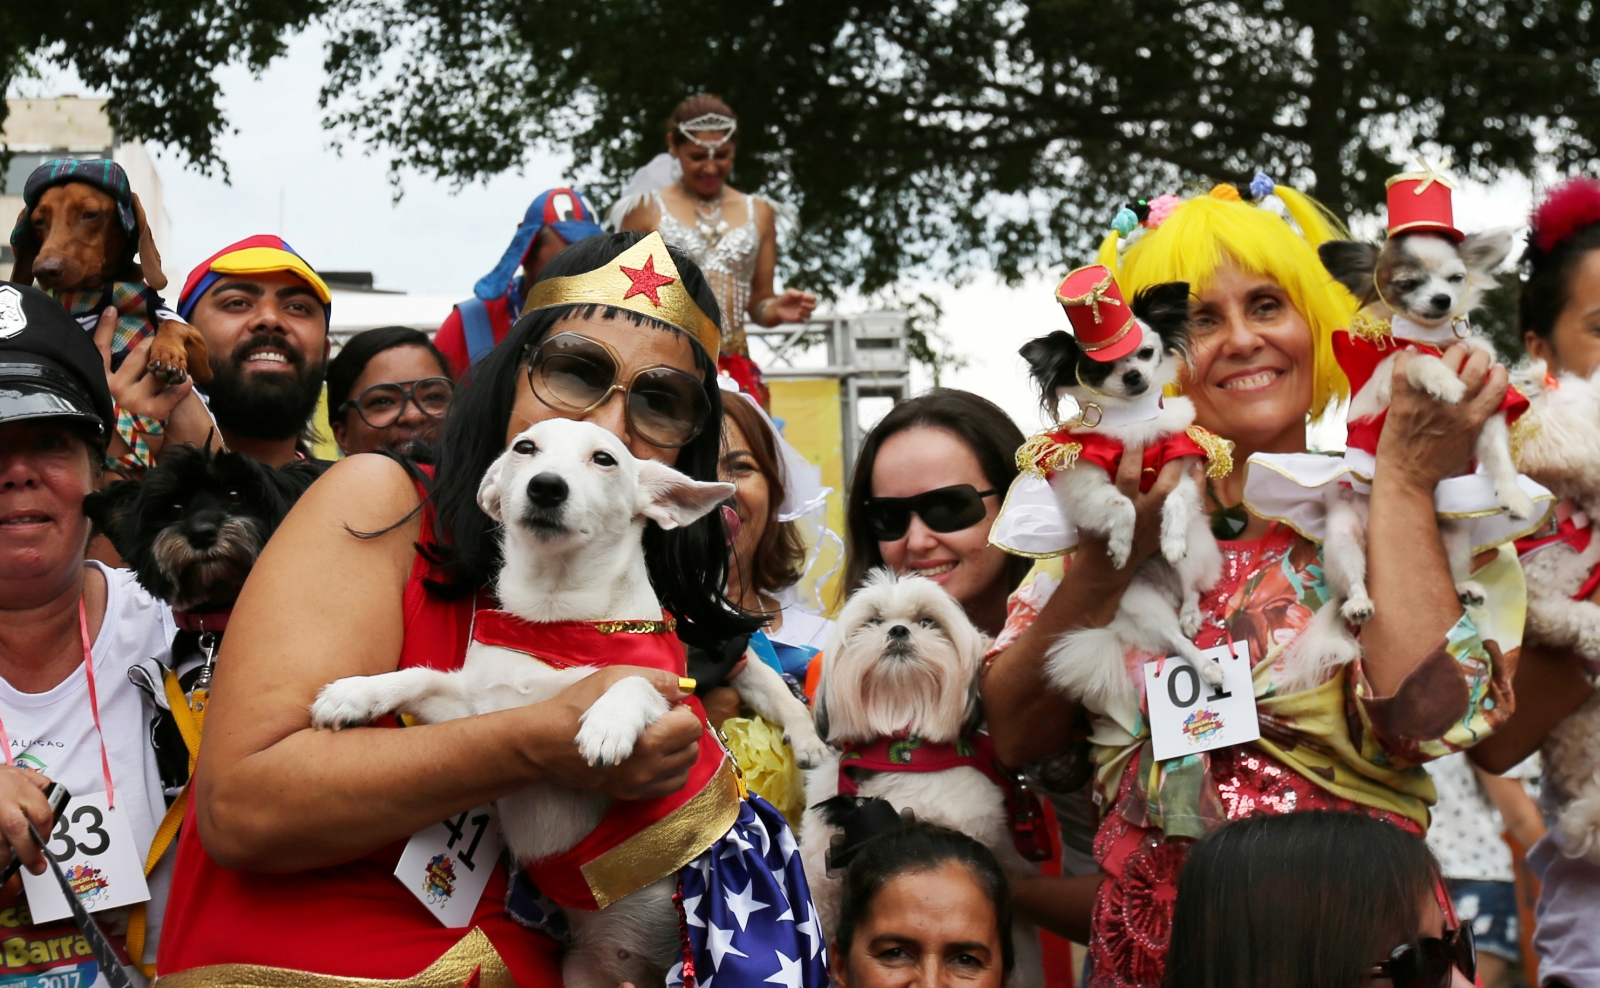 Dog lovers take time to dress their beloved pooches in special costumes